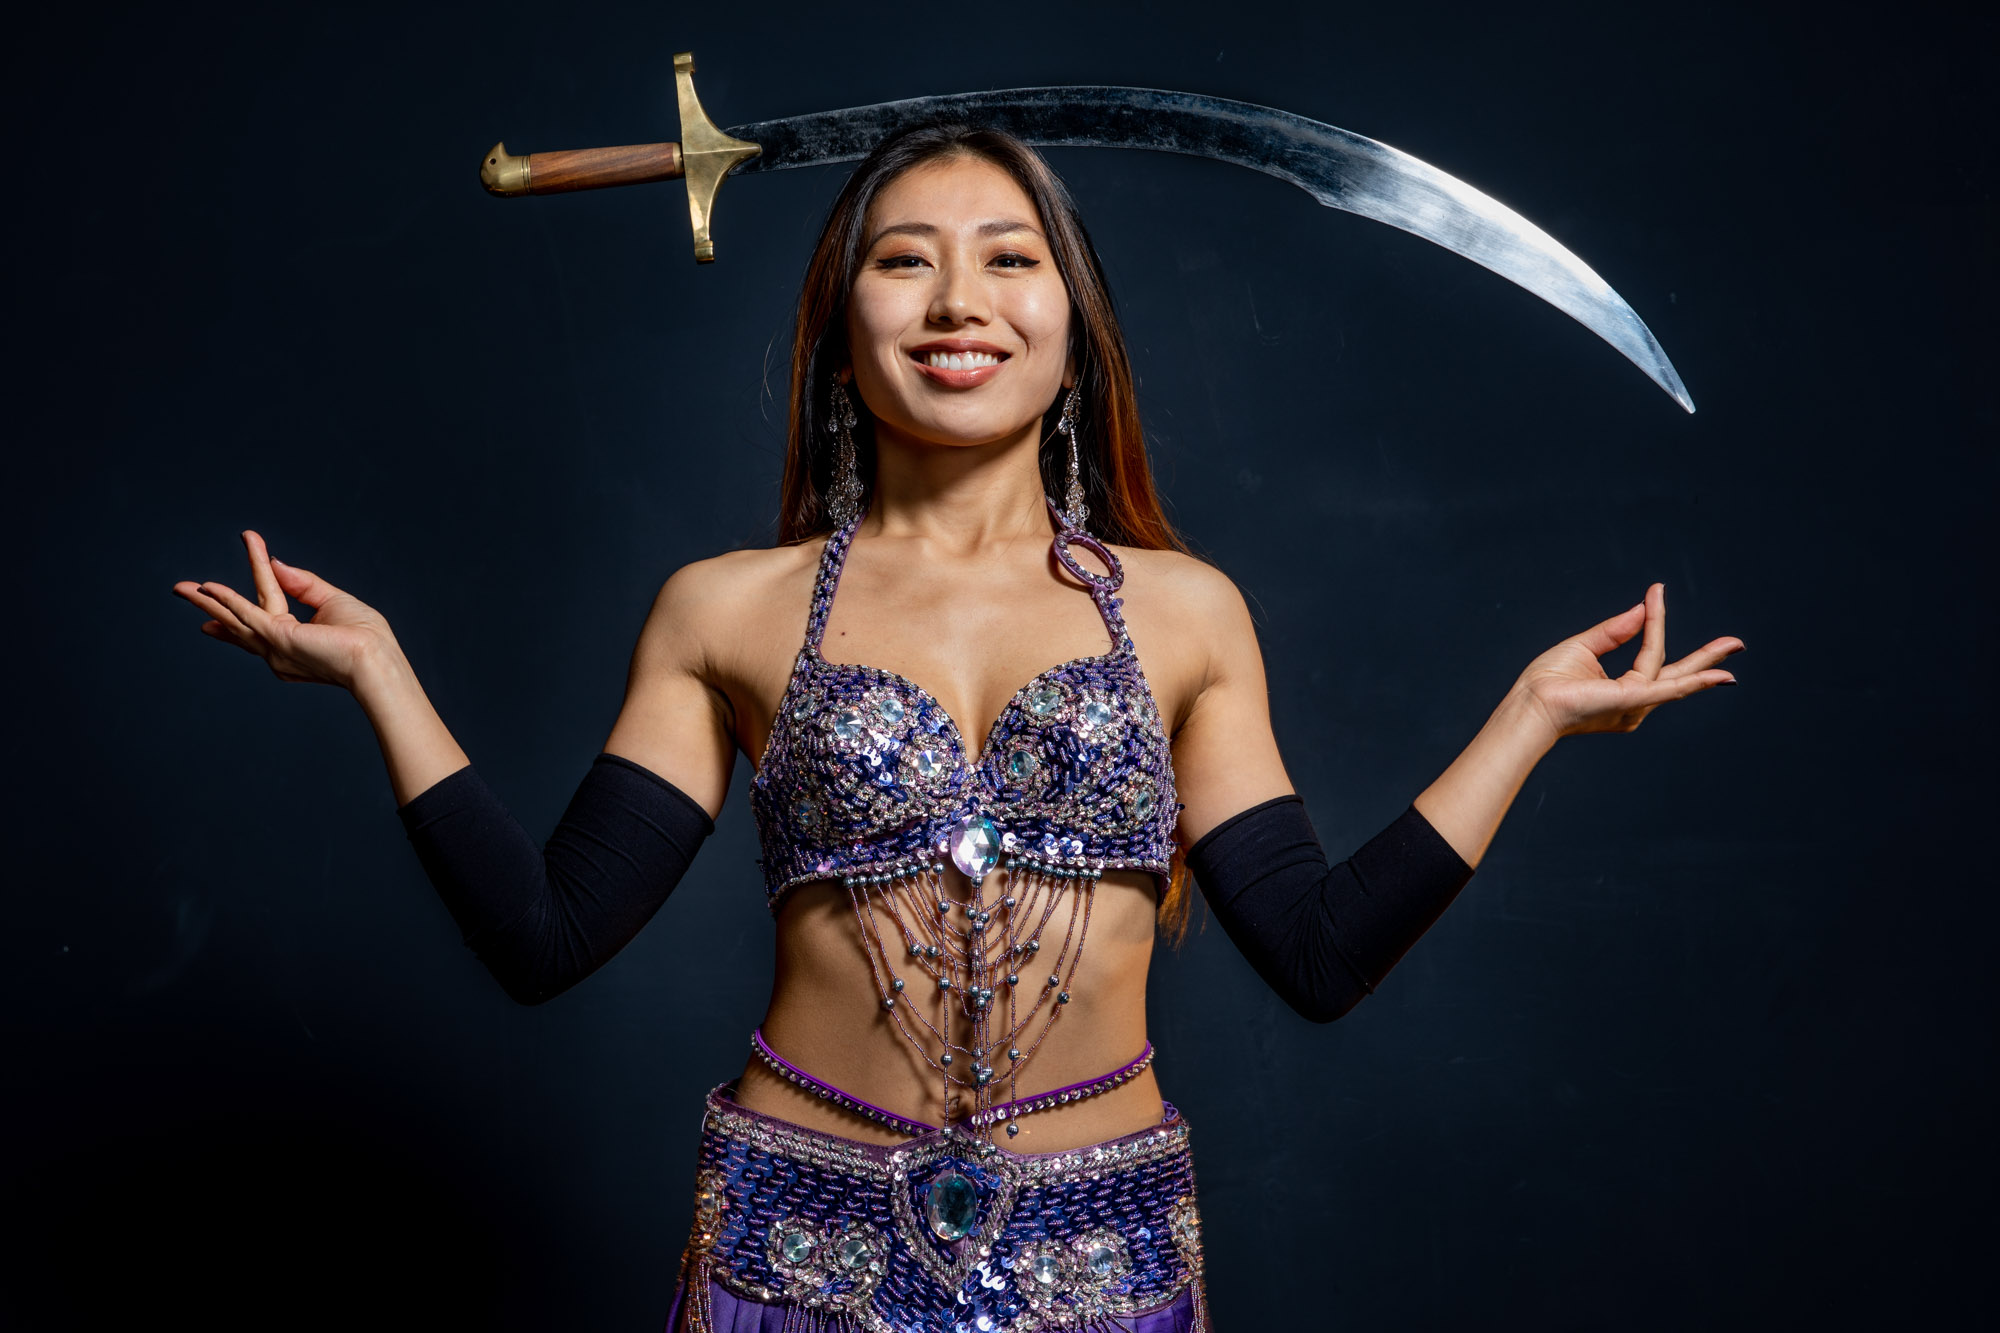 a belly dancer posing with her sword